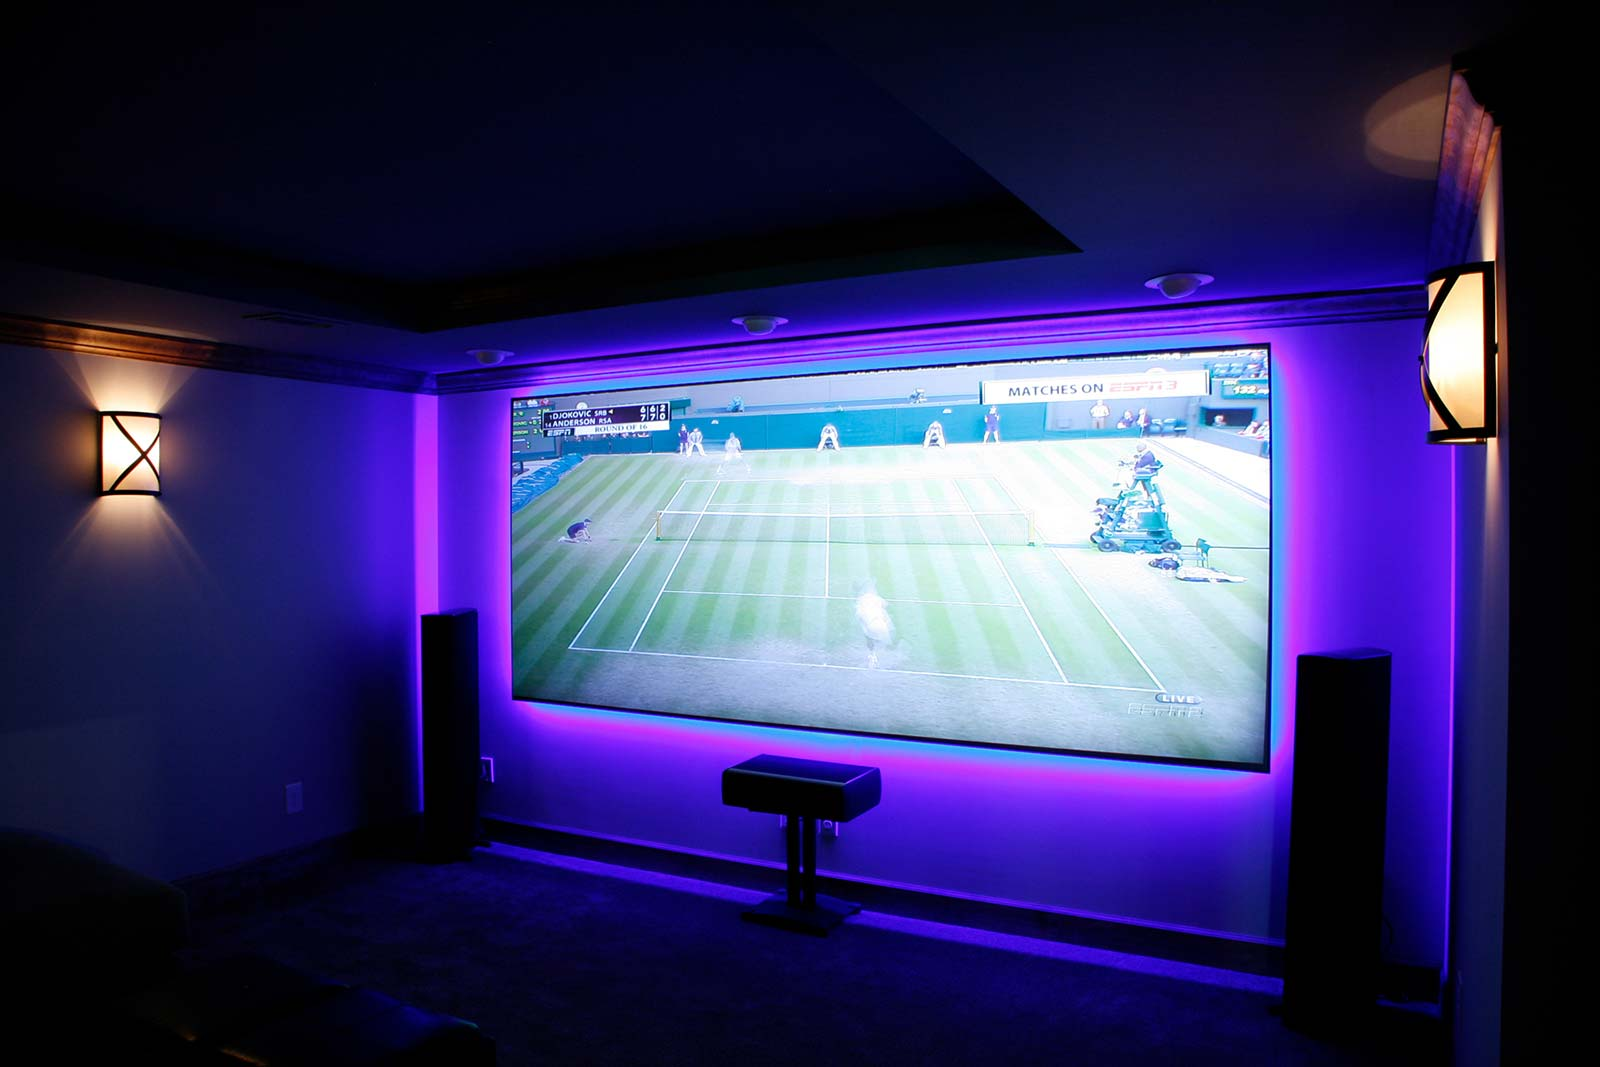 Home theater screen with lights off